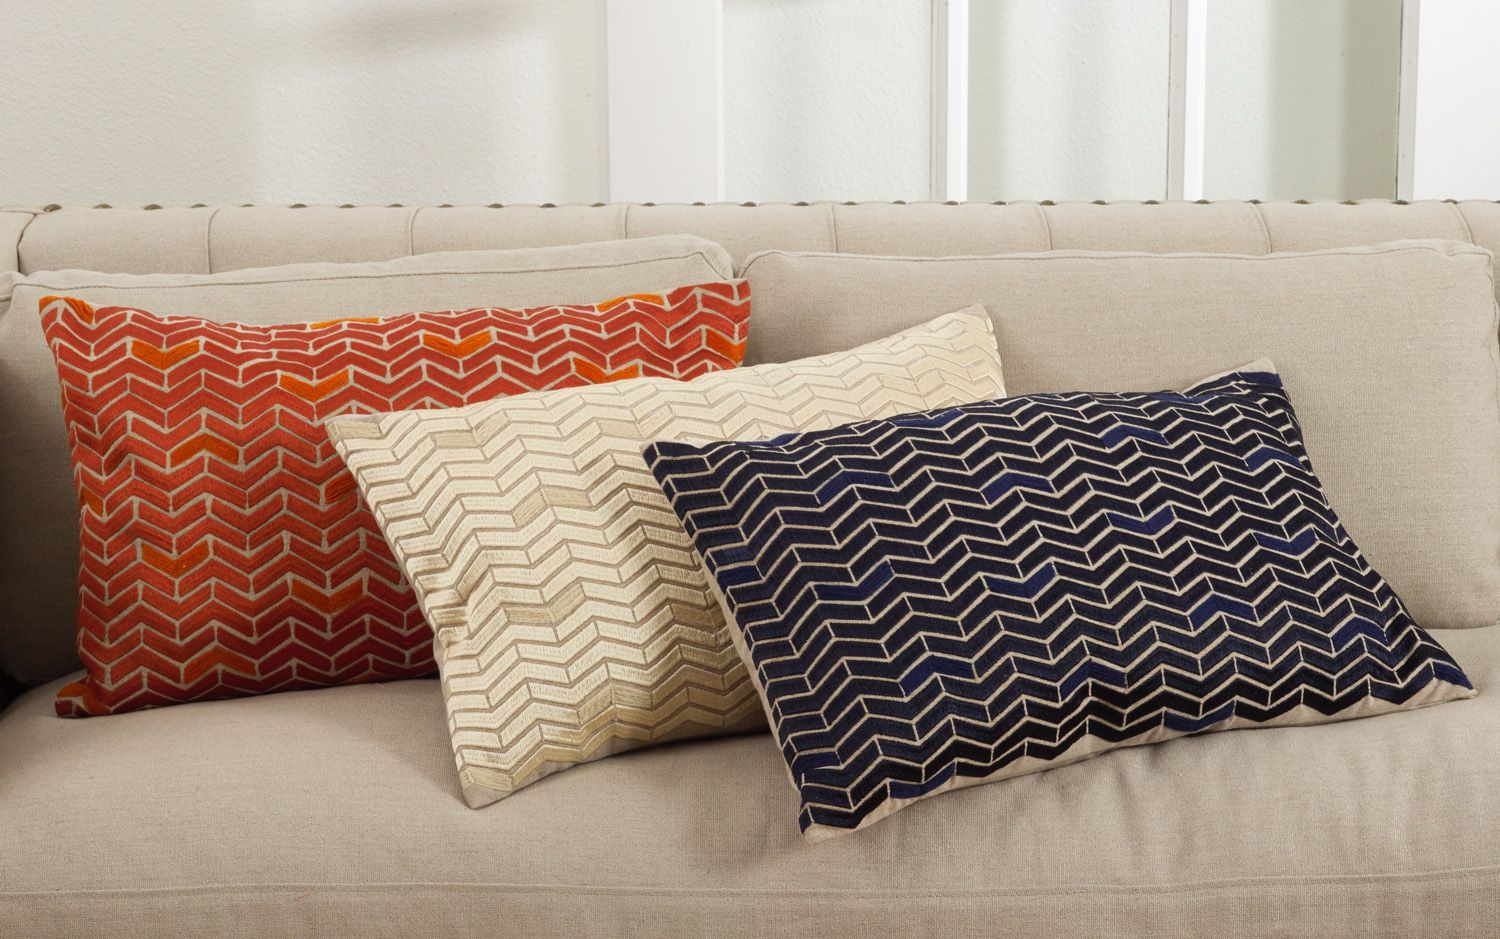 Marcella Design in persimmon, ivory, and navy blue | Pillow Fight ...